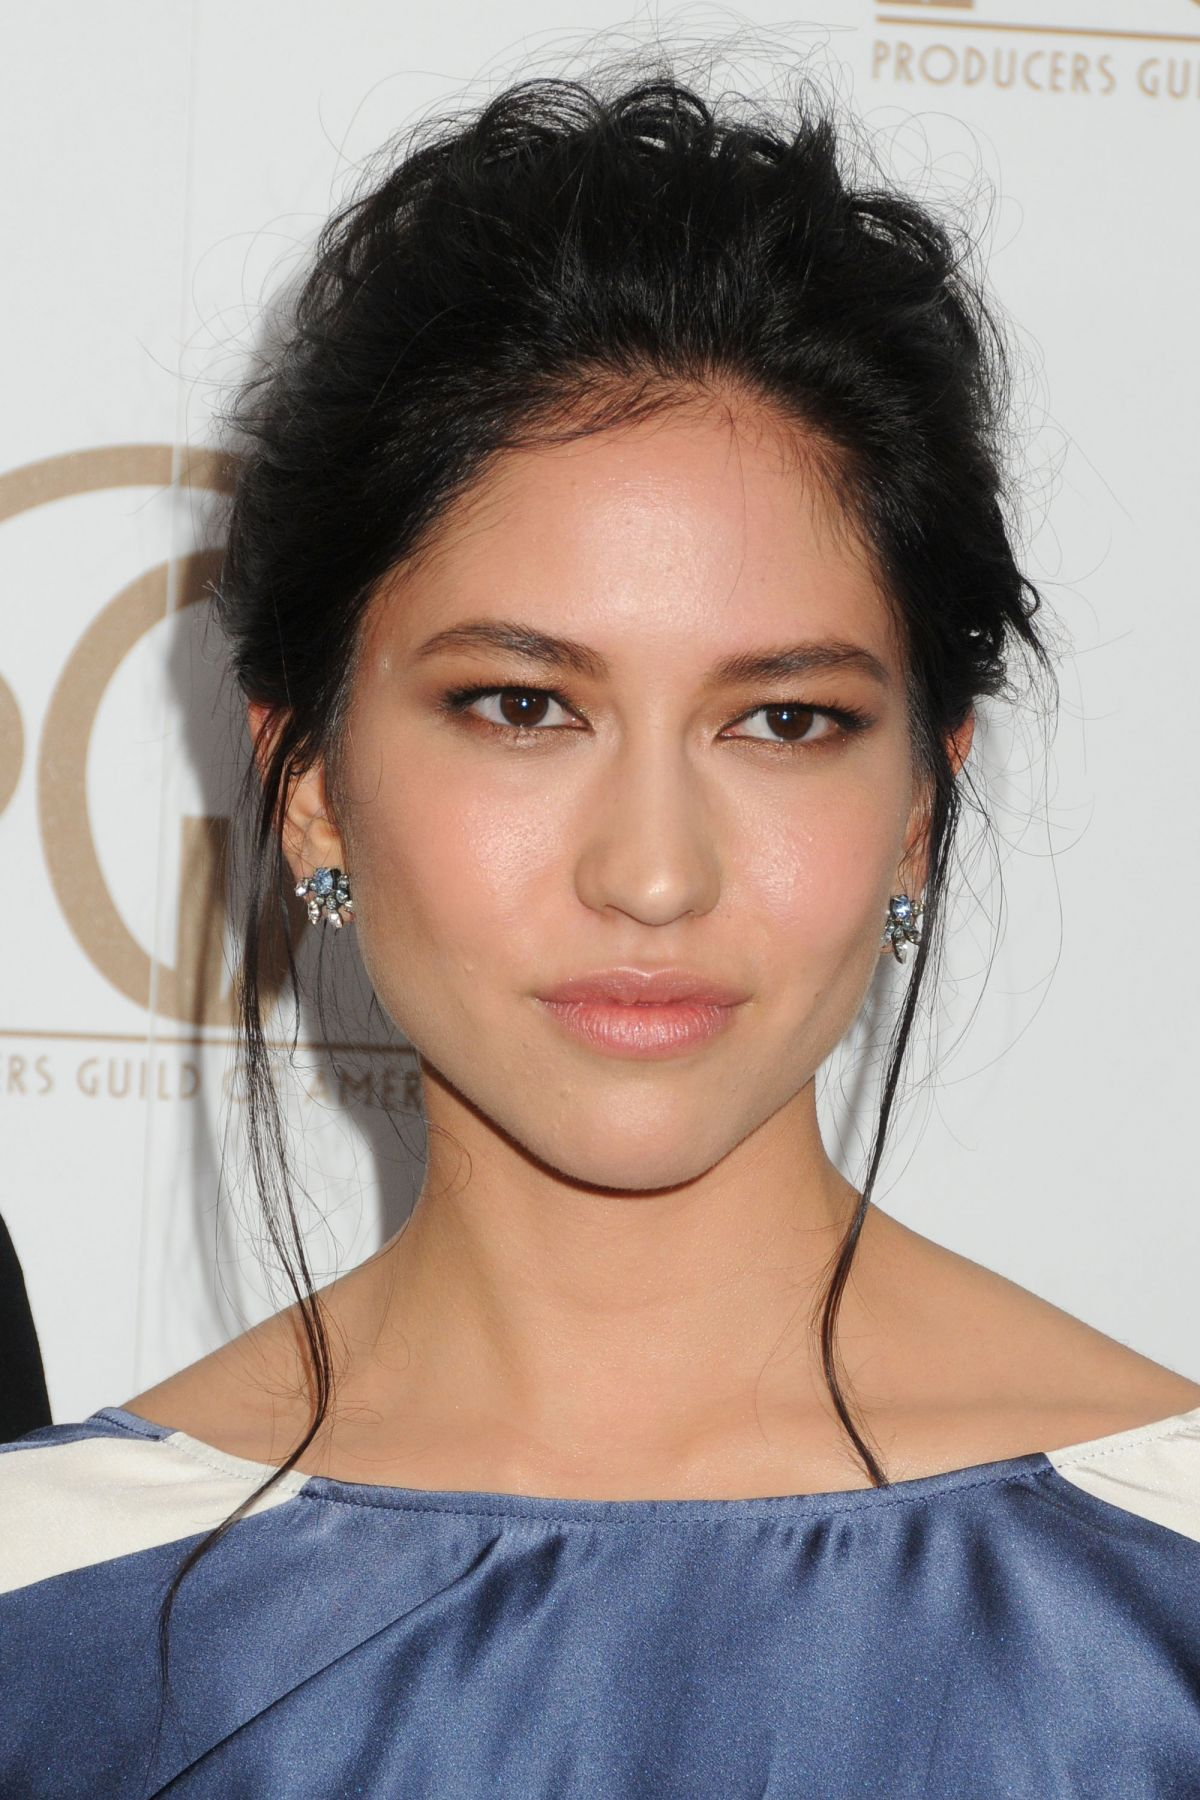 SONOYA MIZUNO at 27th Annual Producers Guild Awards in Los Angeles 01/23/2016